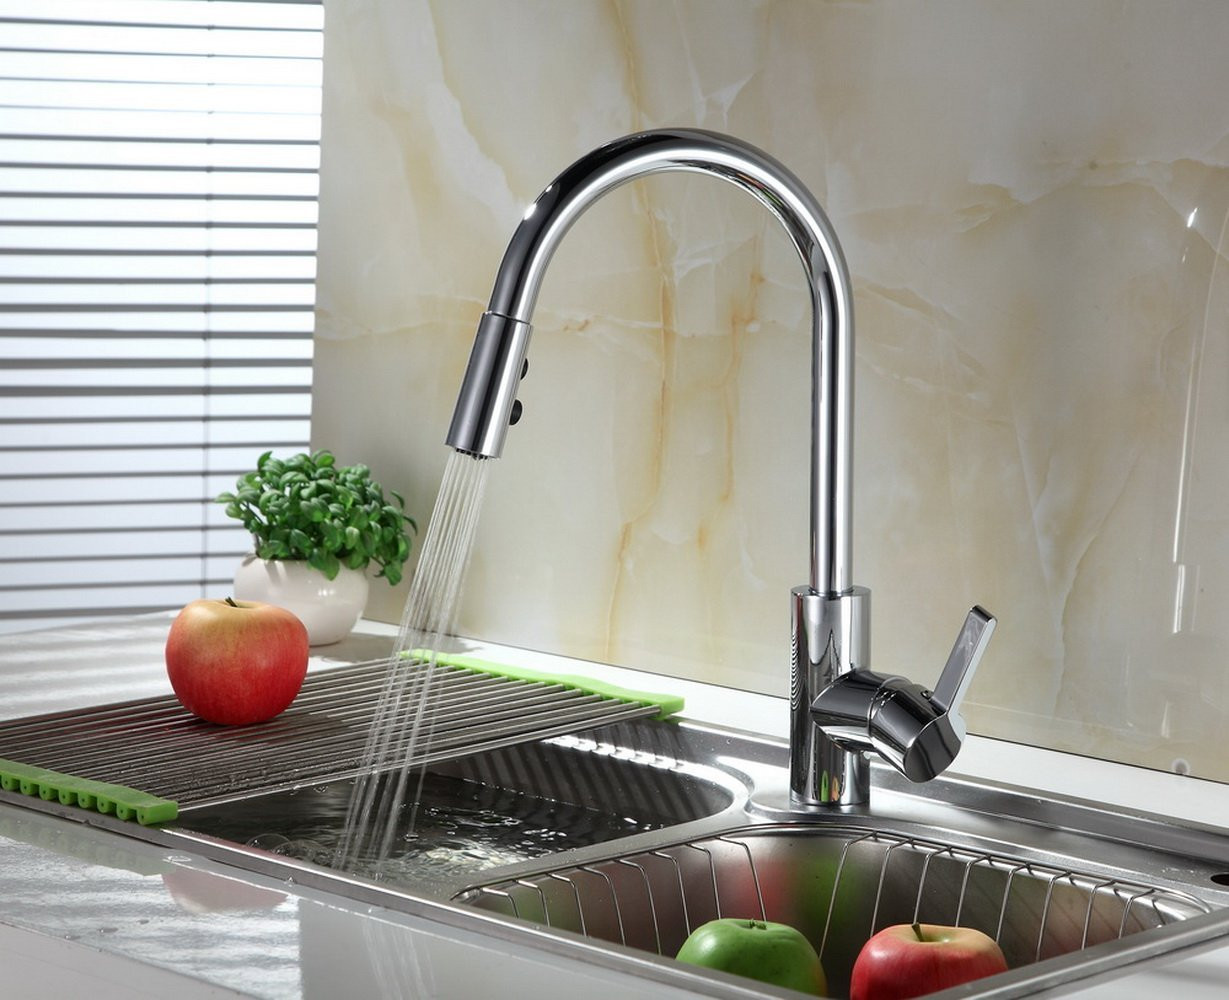 RunFine RF421007 Single Handle Pull Out Sprayer, High Arc Stainless Steel Swivel Spout Chrome Finish One 3 Hole Installation Kitchen Sink Faucets with Deck Plate